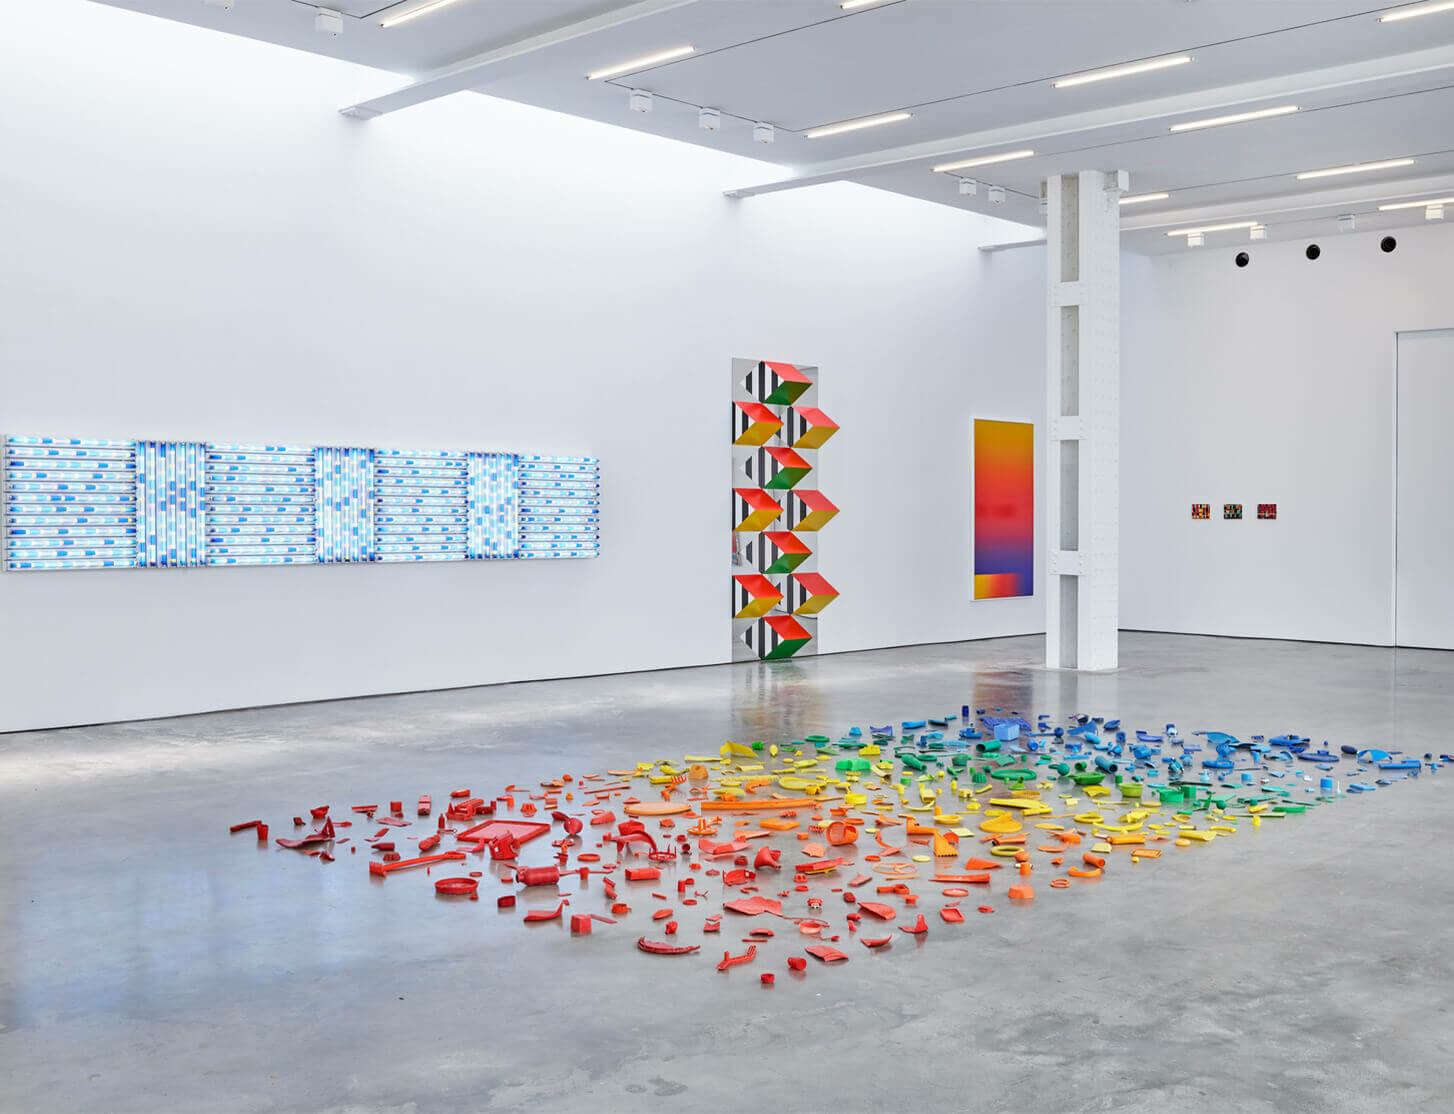 Lisson Gallery New York reopens with extended hours on Wednesday 22 July